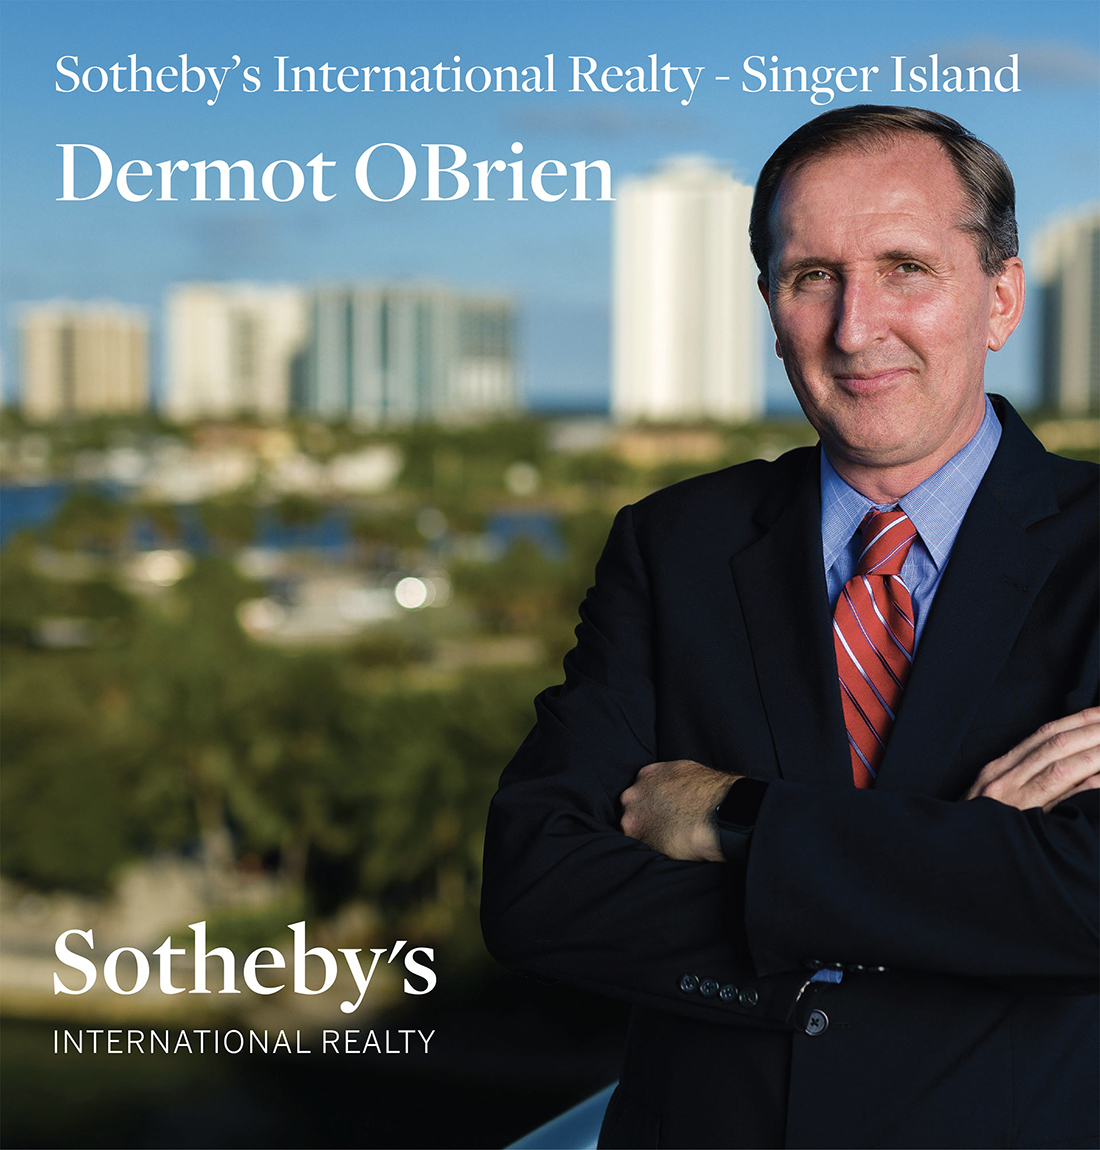 Sotheby's International Realty - Singer Island